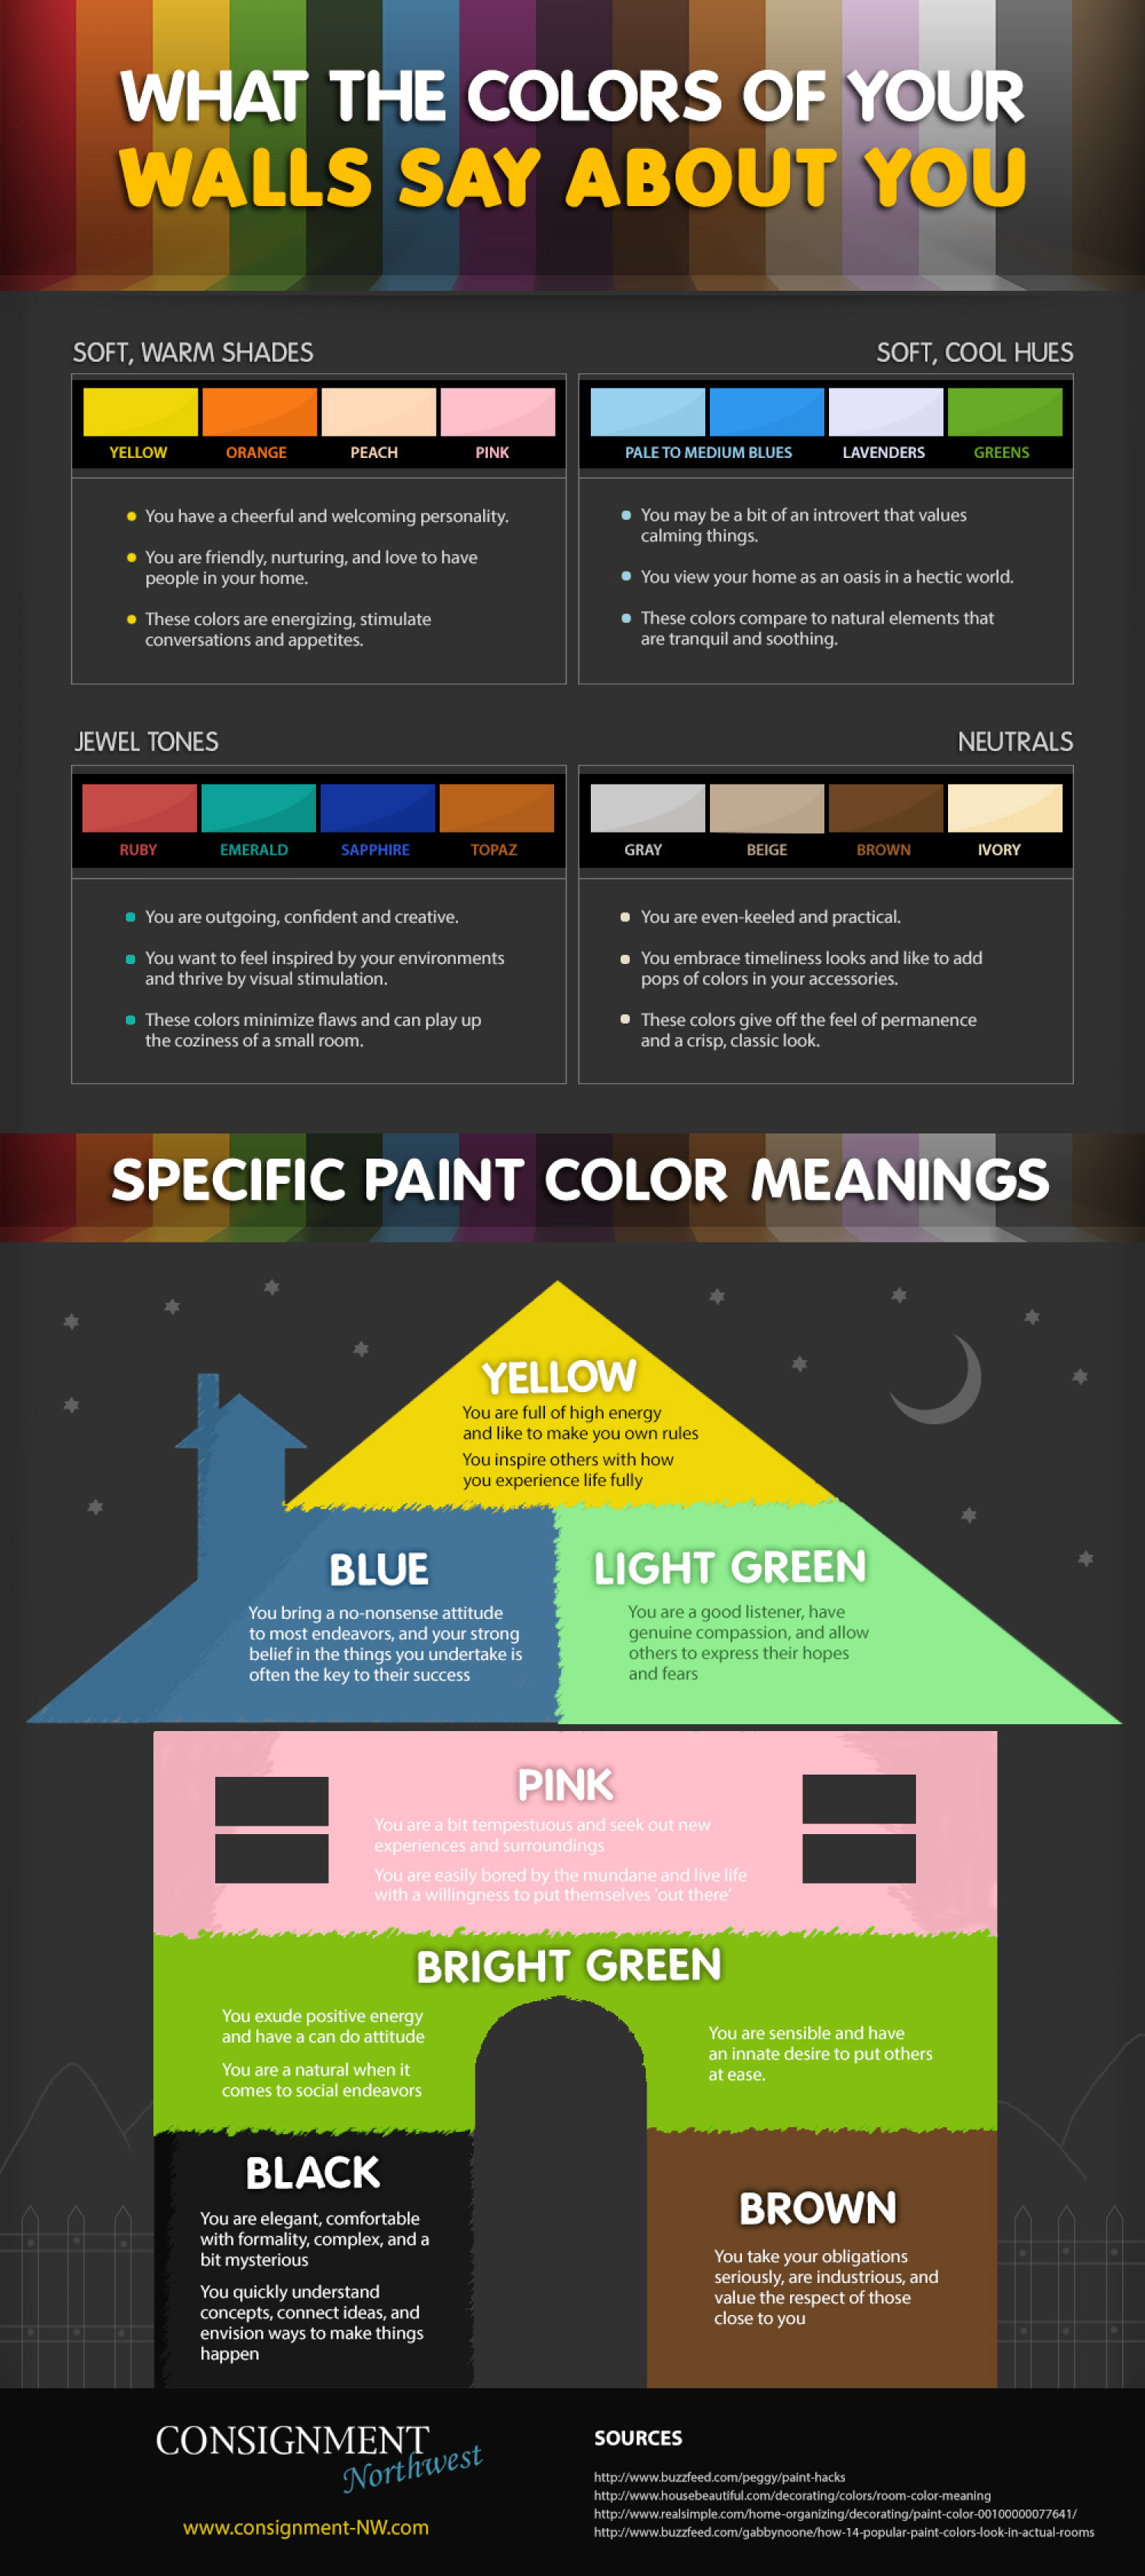 What The Color of Your Walls Say About You Infographic